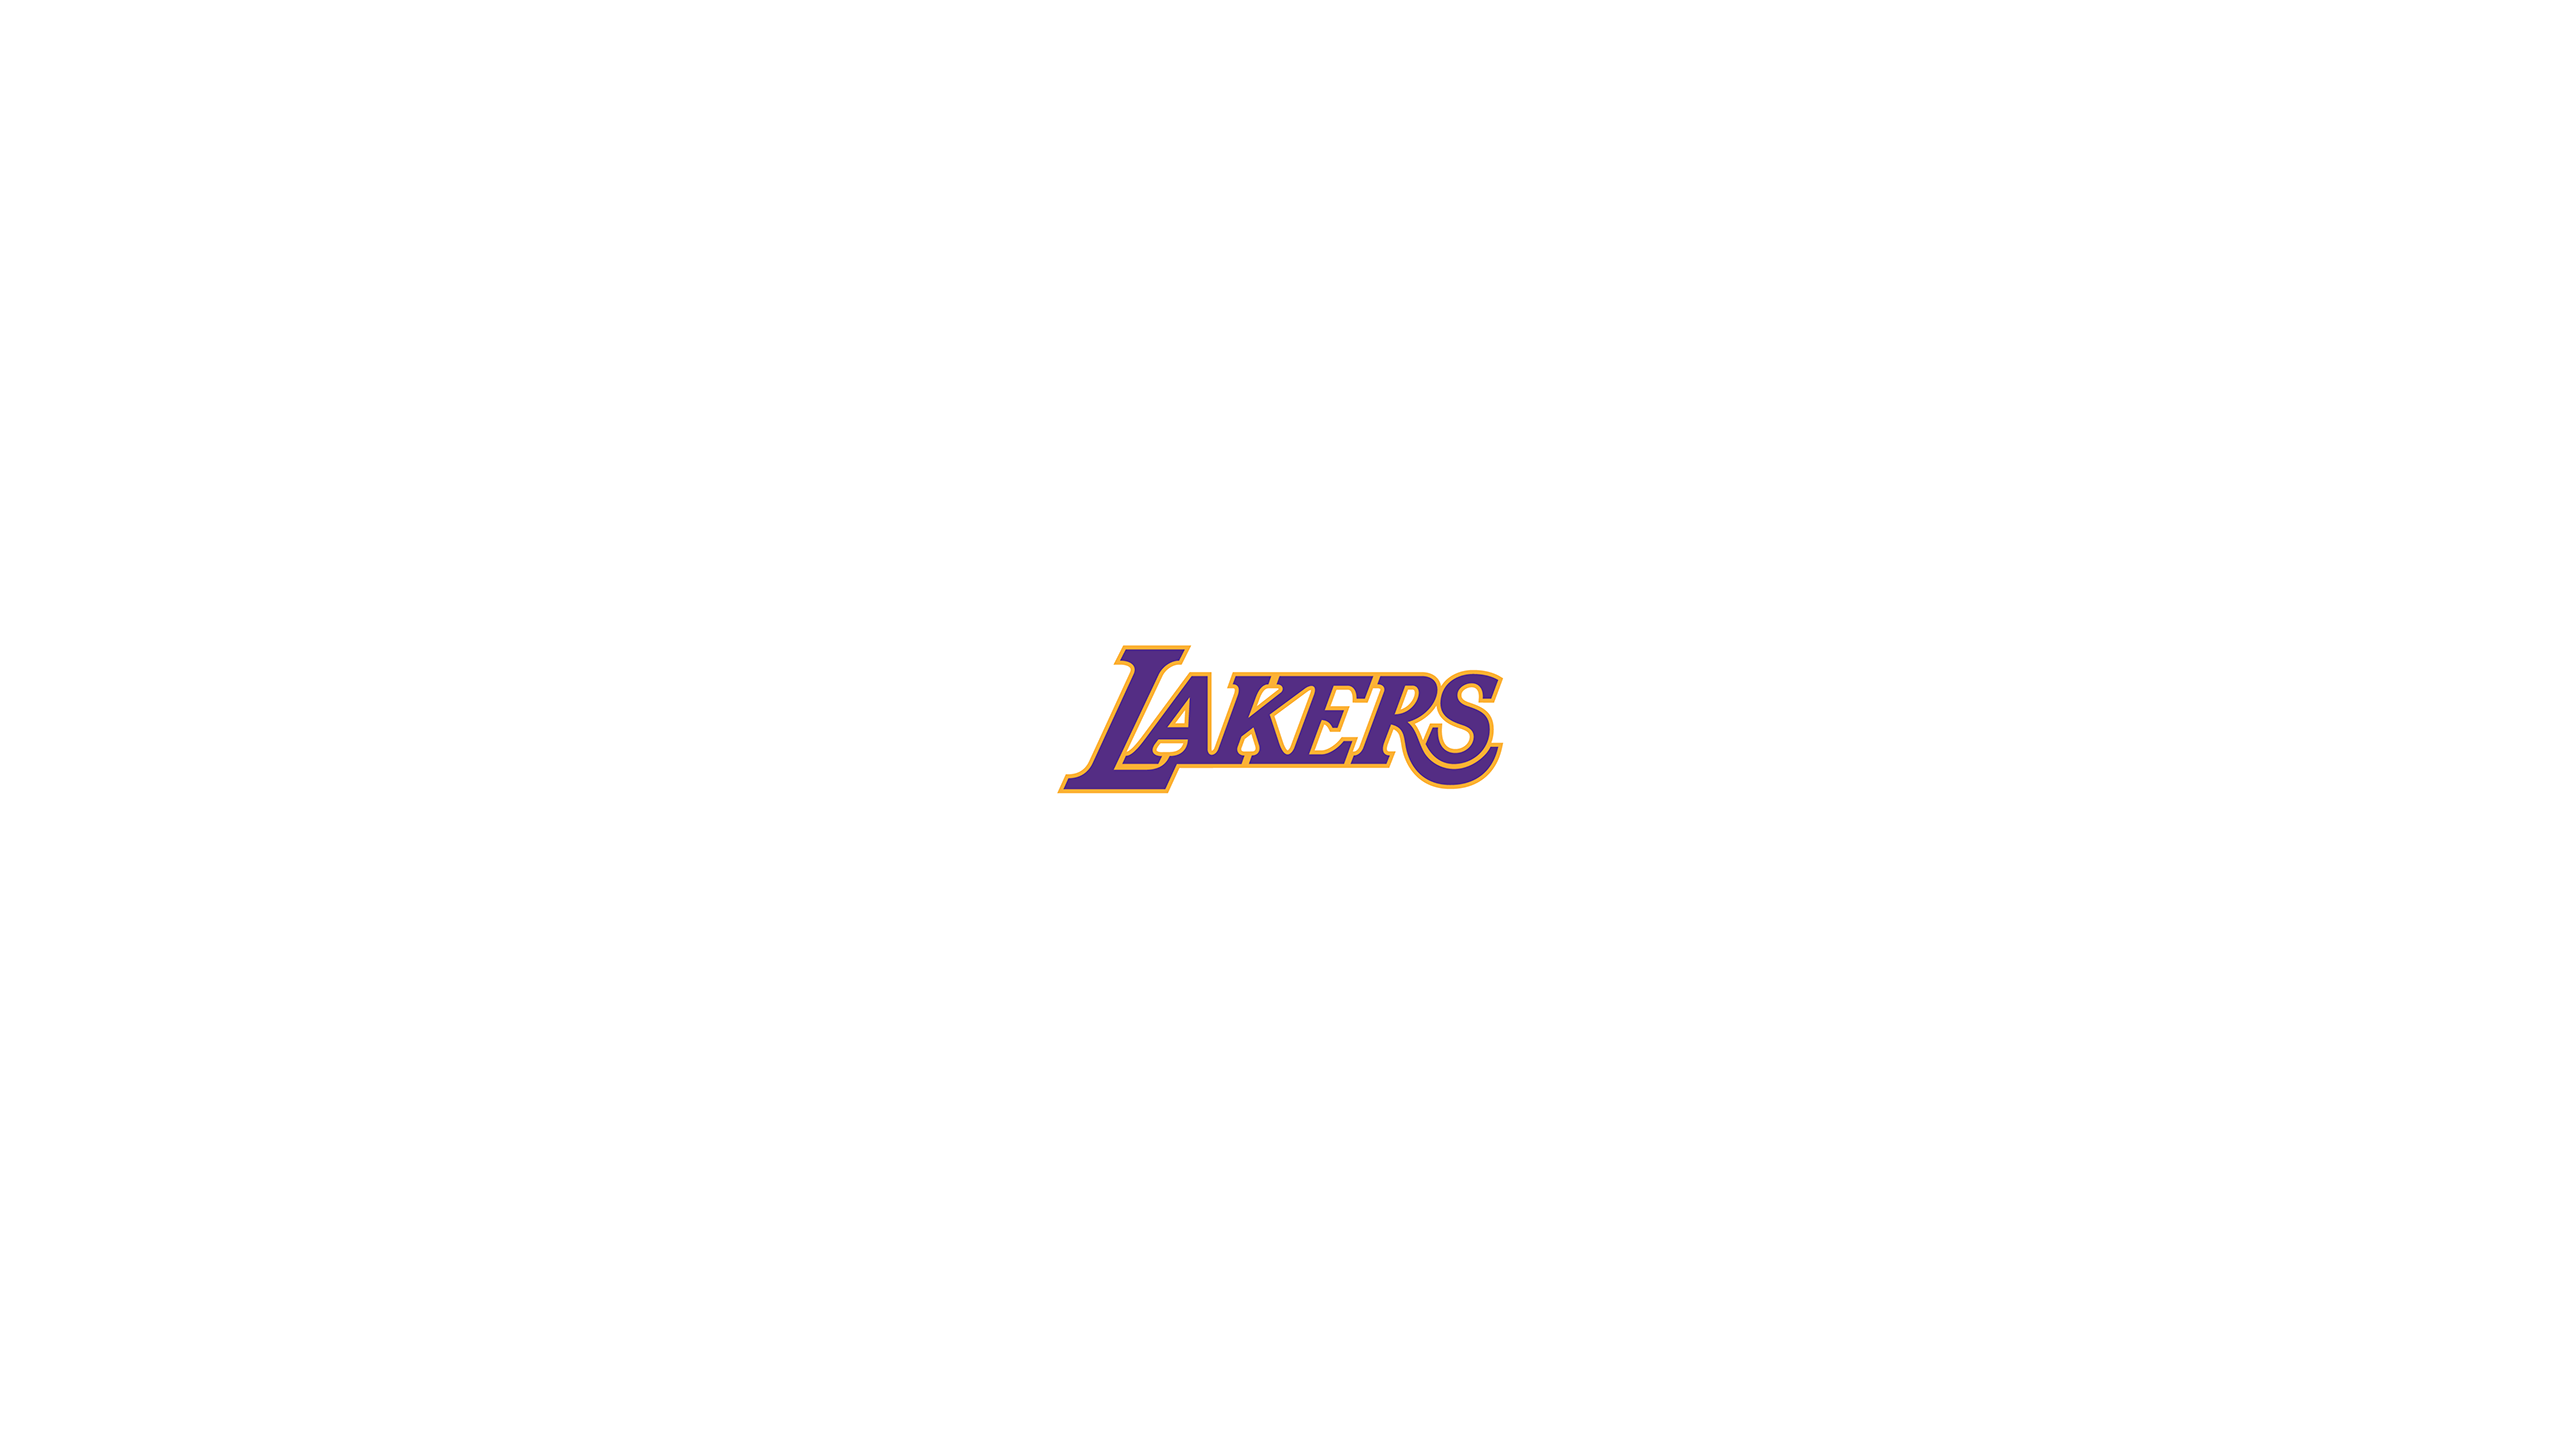 Los Angeles Lakers (Alt)